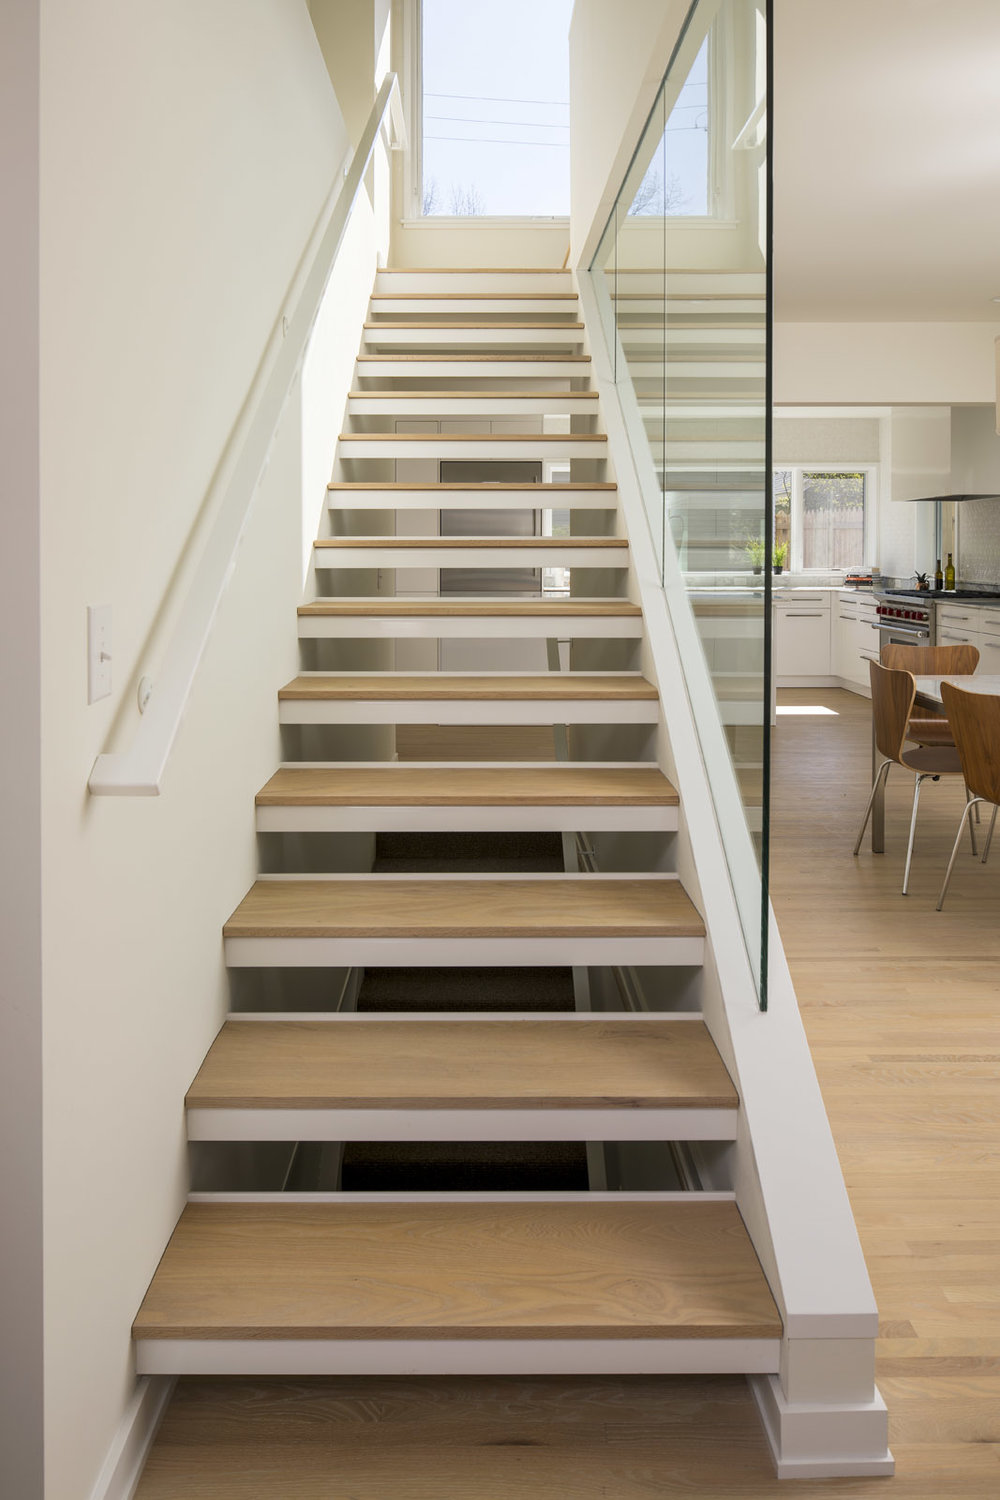 Custom open wood stair tread detail in modern home